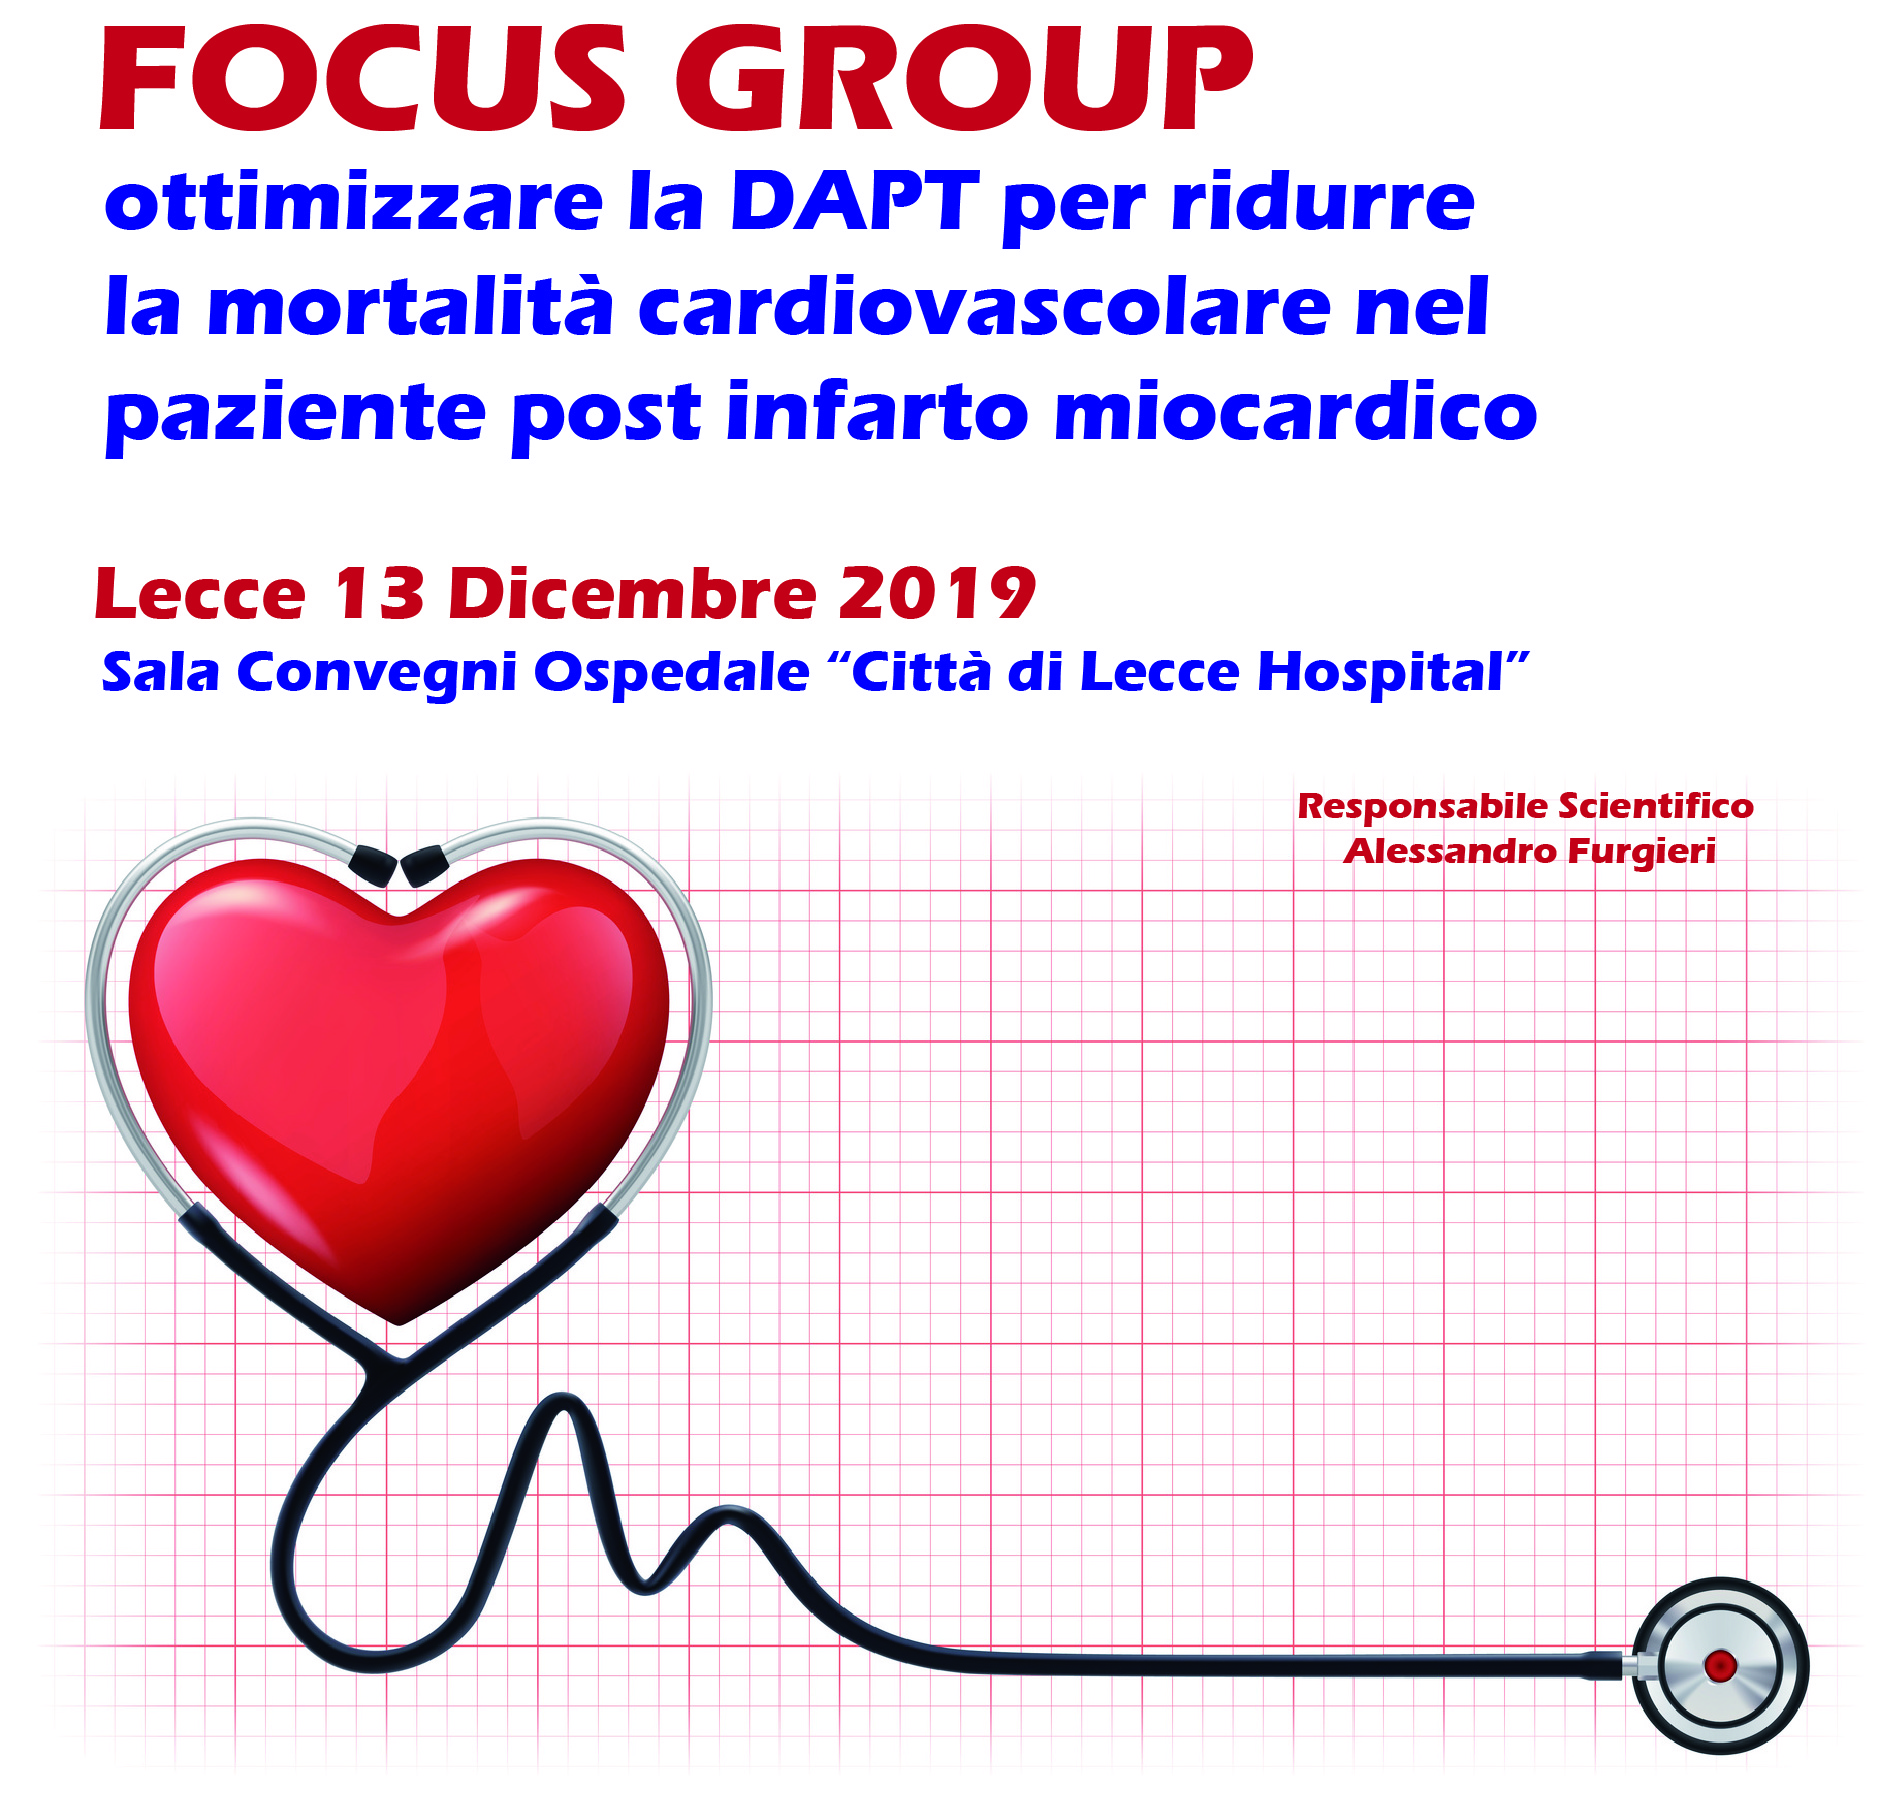 FOCUS GROUP LECCE